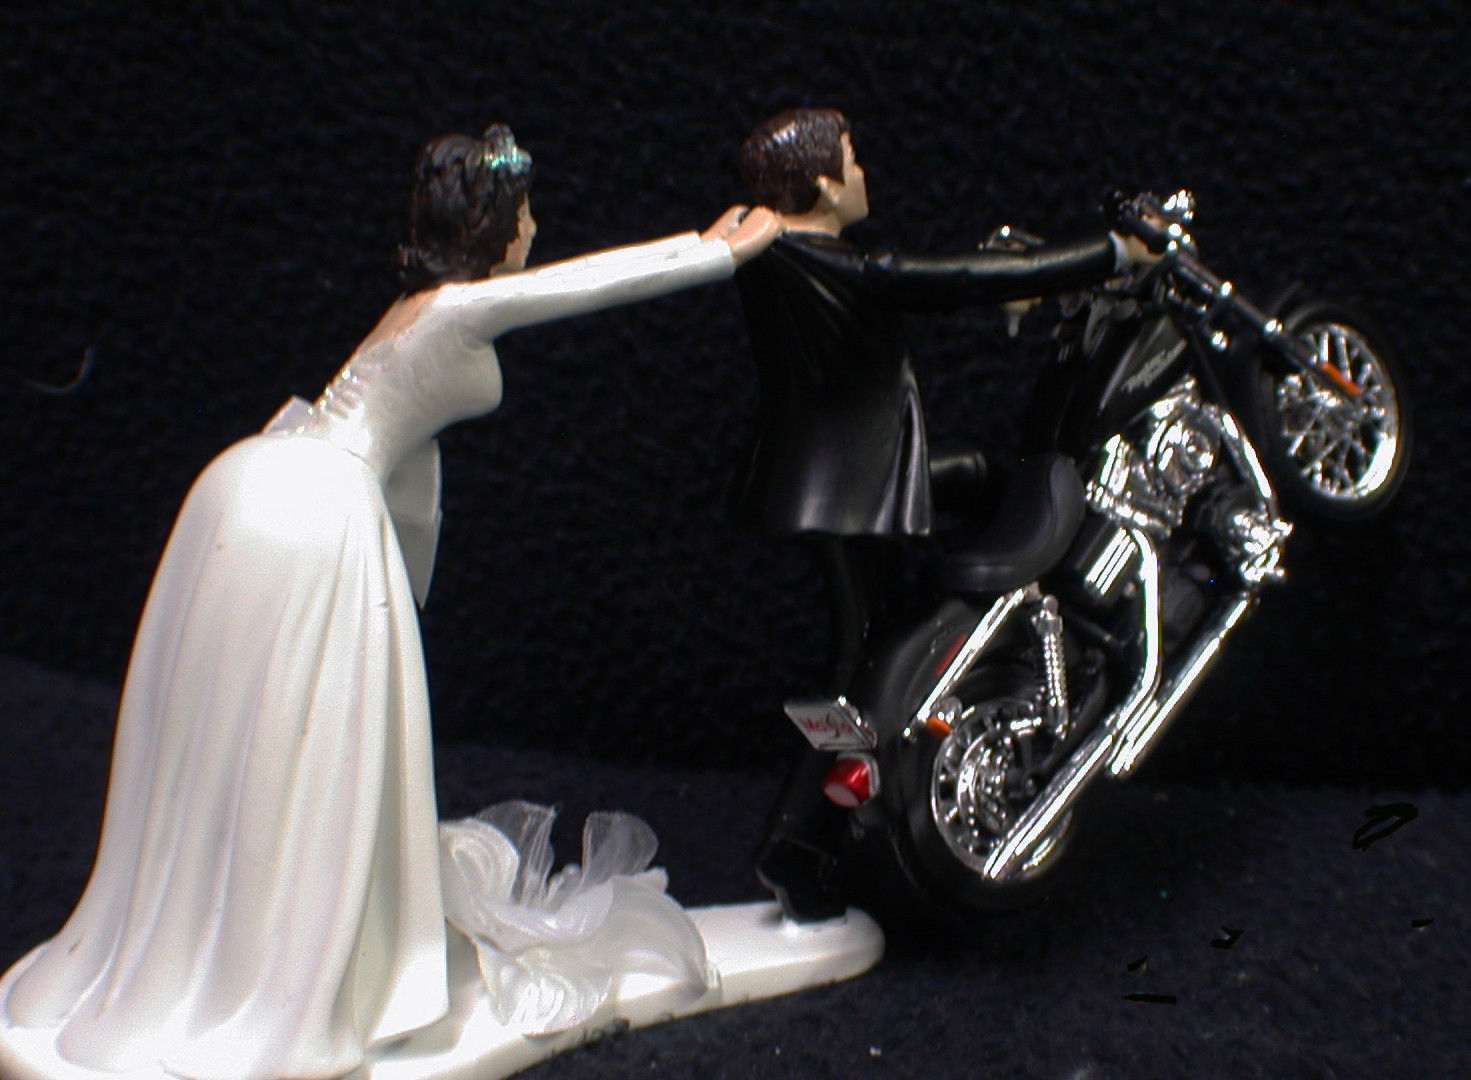 Wedding Cake Topper W/ Harley Davidson Motorcycle White Black Hispanic Groom top